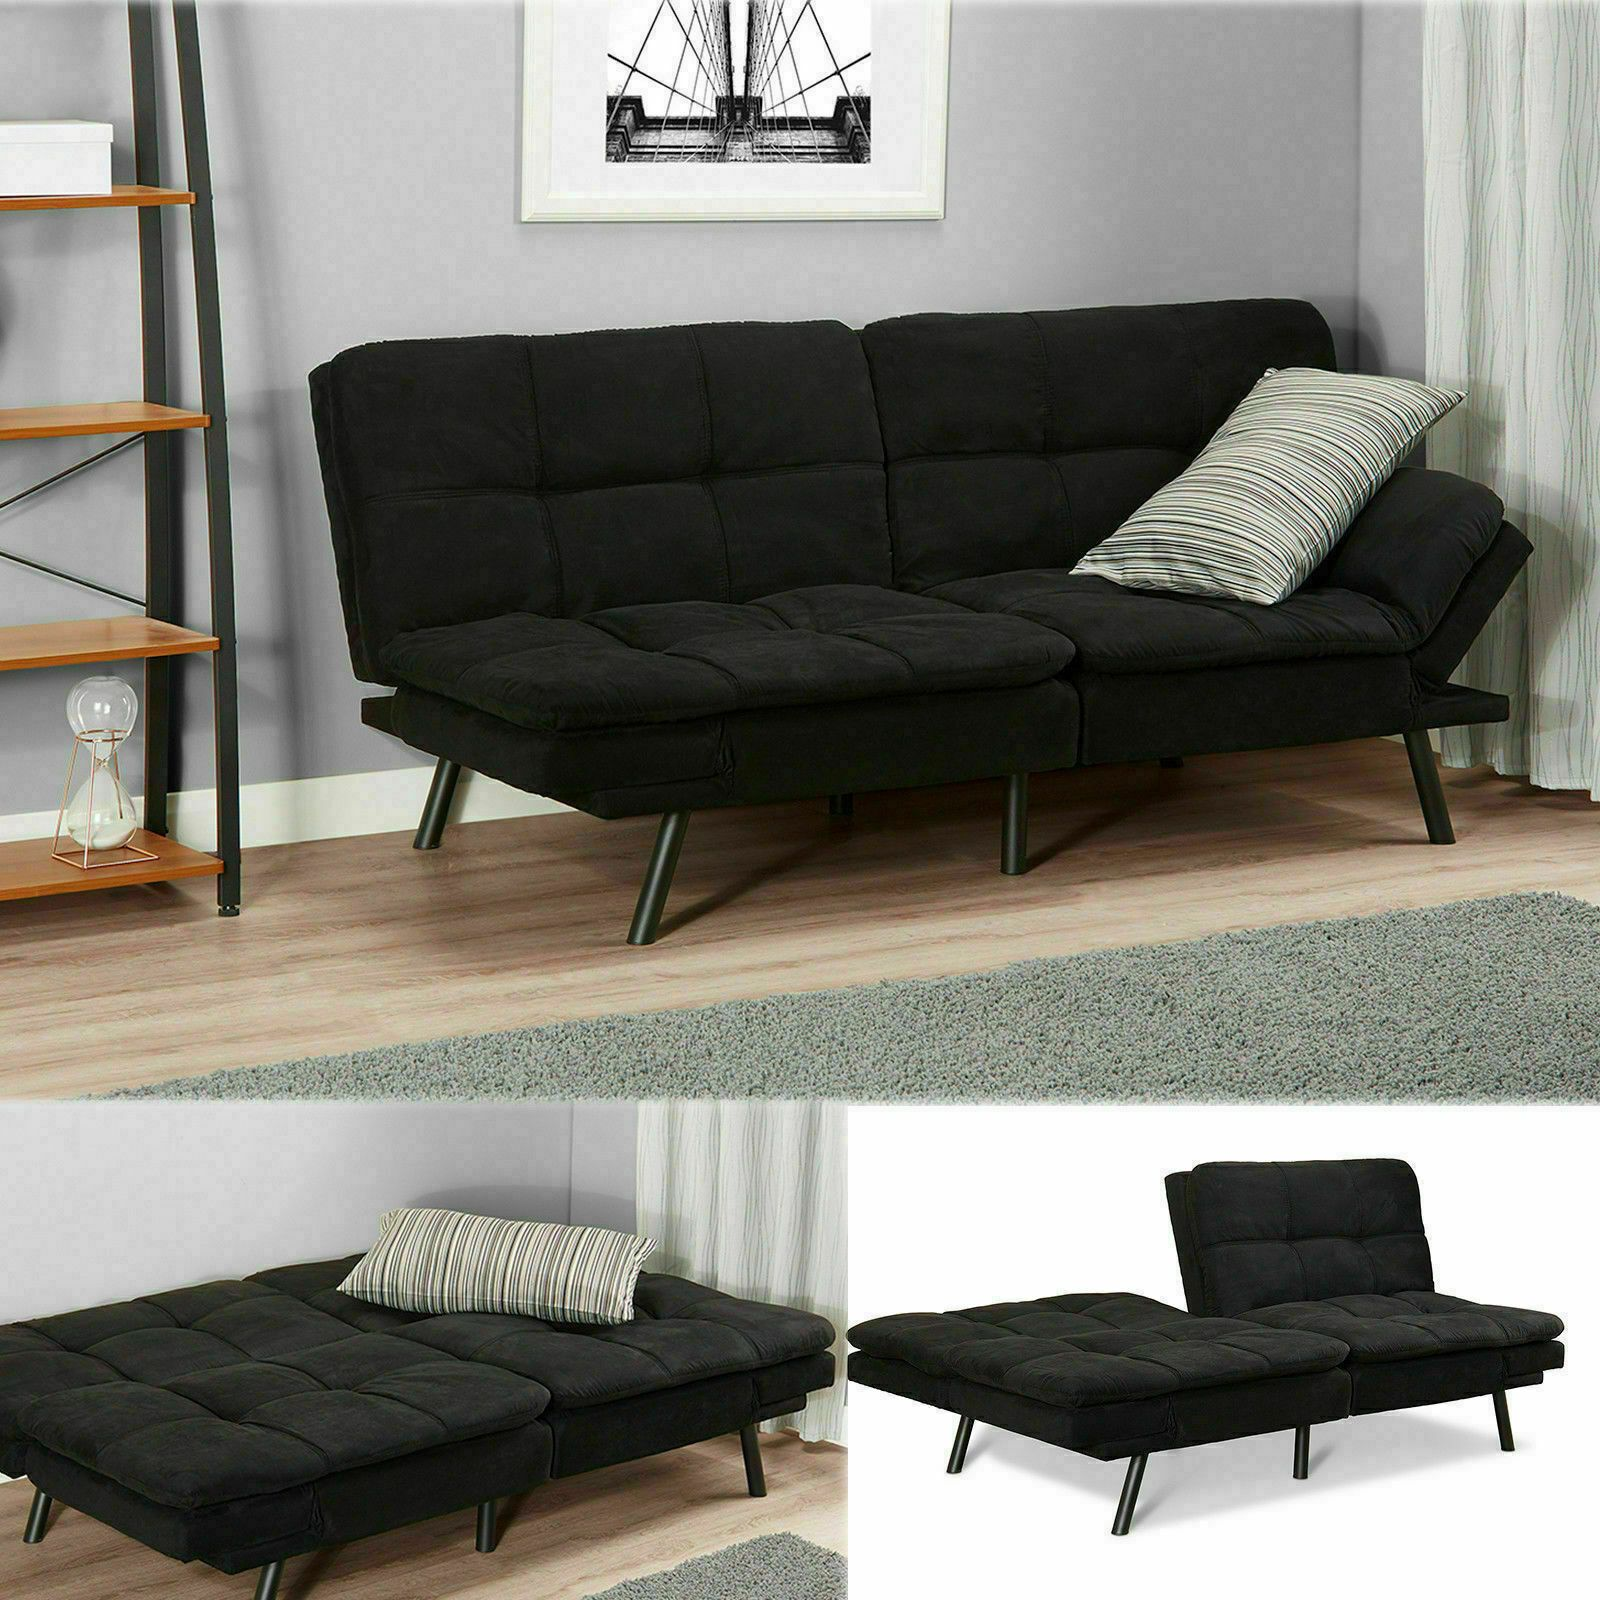 Sleeper Sofa Bed Black Suede Convertible Couch Modern Living Room Futon Loveseat Sofa Living Ideas Of Sof Sofa Bed Black Living Room Sofa Convertible Couch